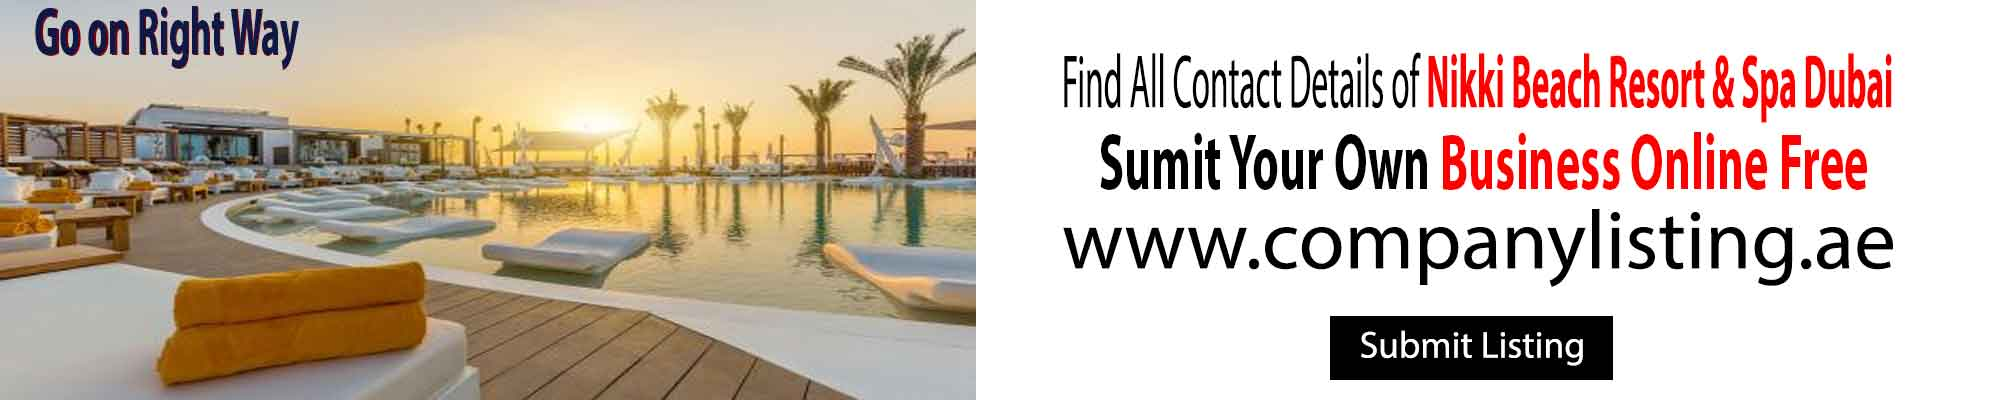 nikki beach dubai,nikki beach resort dubai,nikki beach resort and spa dubai,